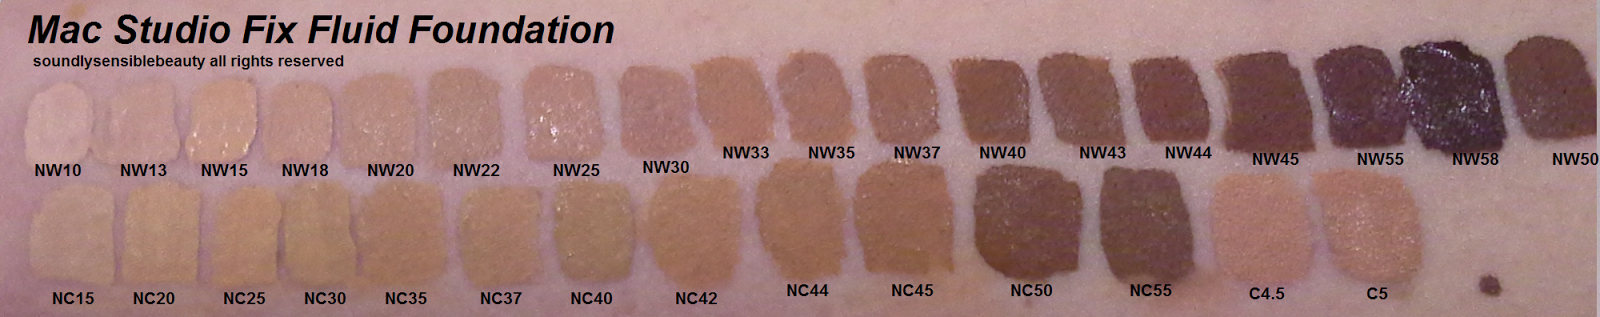 Mac Studio Fix Fluid Foundation; Review & Swatches of Shades; NW10, NW13, NW15, NW18, NW20, NW22, NW25, NW30, NW33, NW35, NW37, NW40, NW43, NW45, NW55, NW58, NW50,NC15, NC20, NC25, NC30, NC35, NC37, NC42, NC44, NC45, NC50, NC55, C4.5, C5